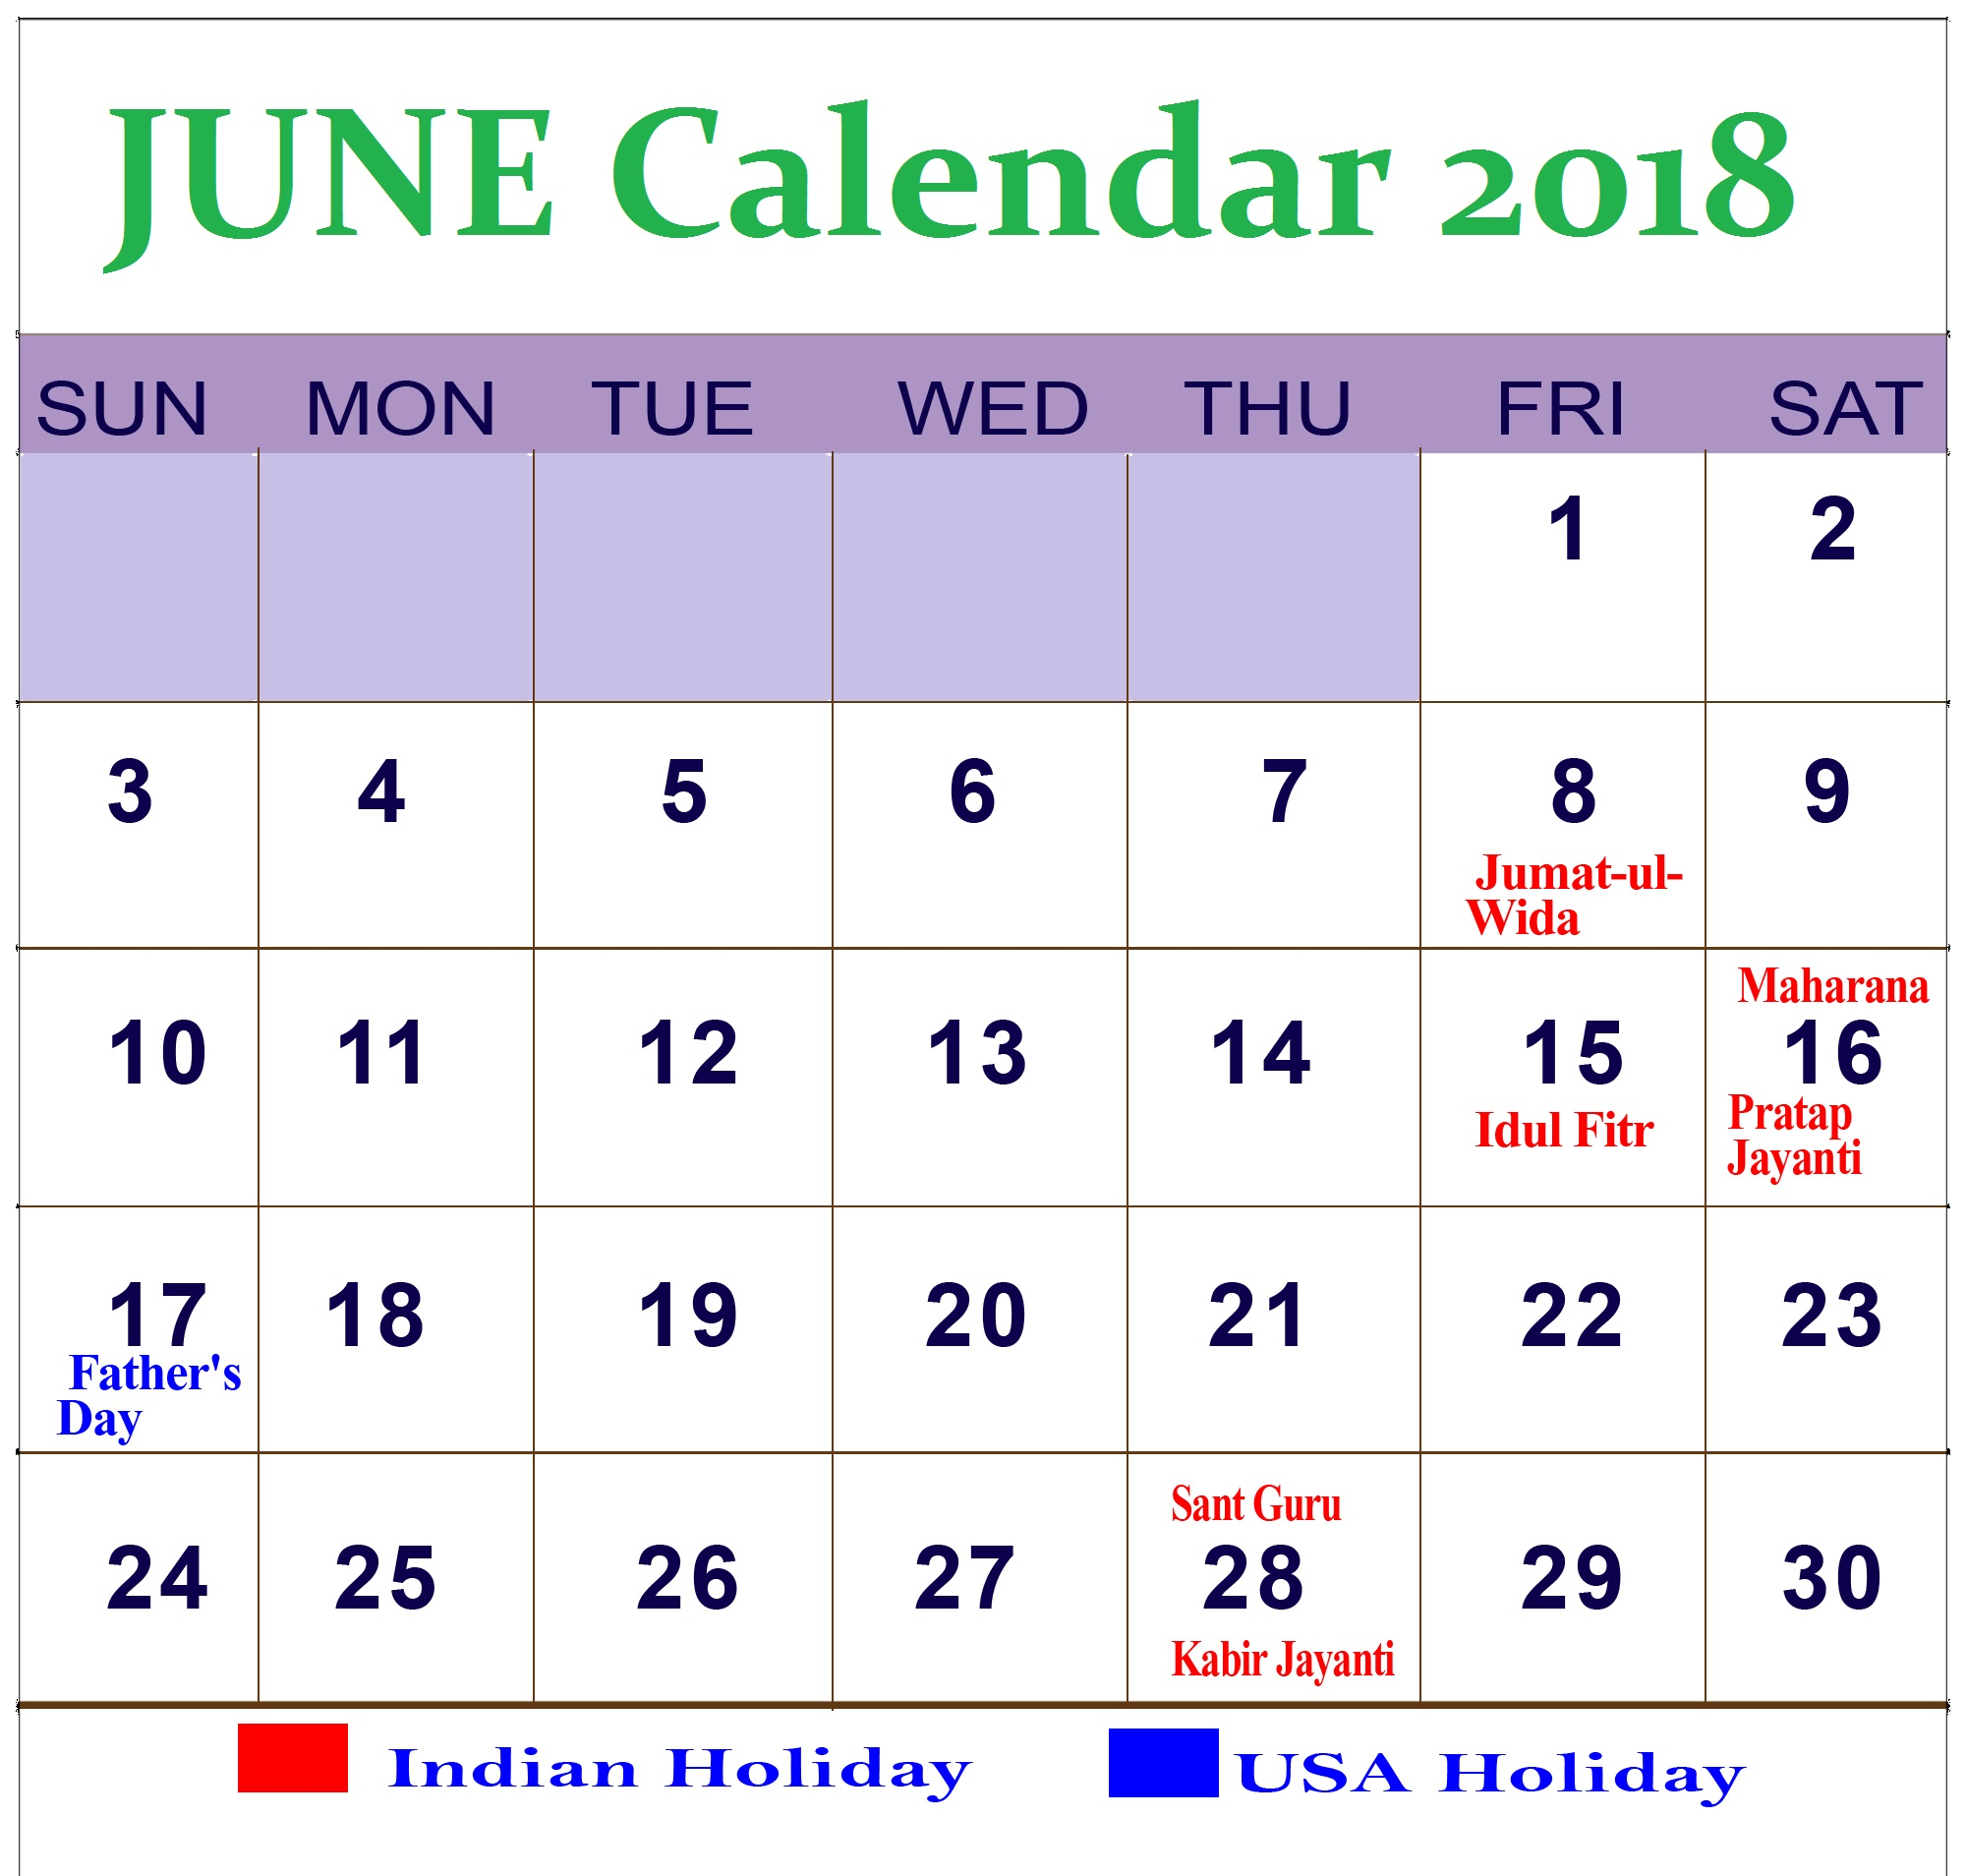 June Calendar Download 2018